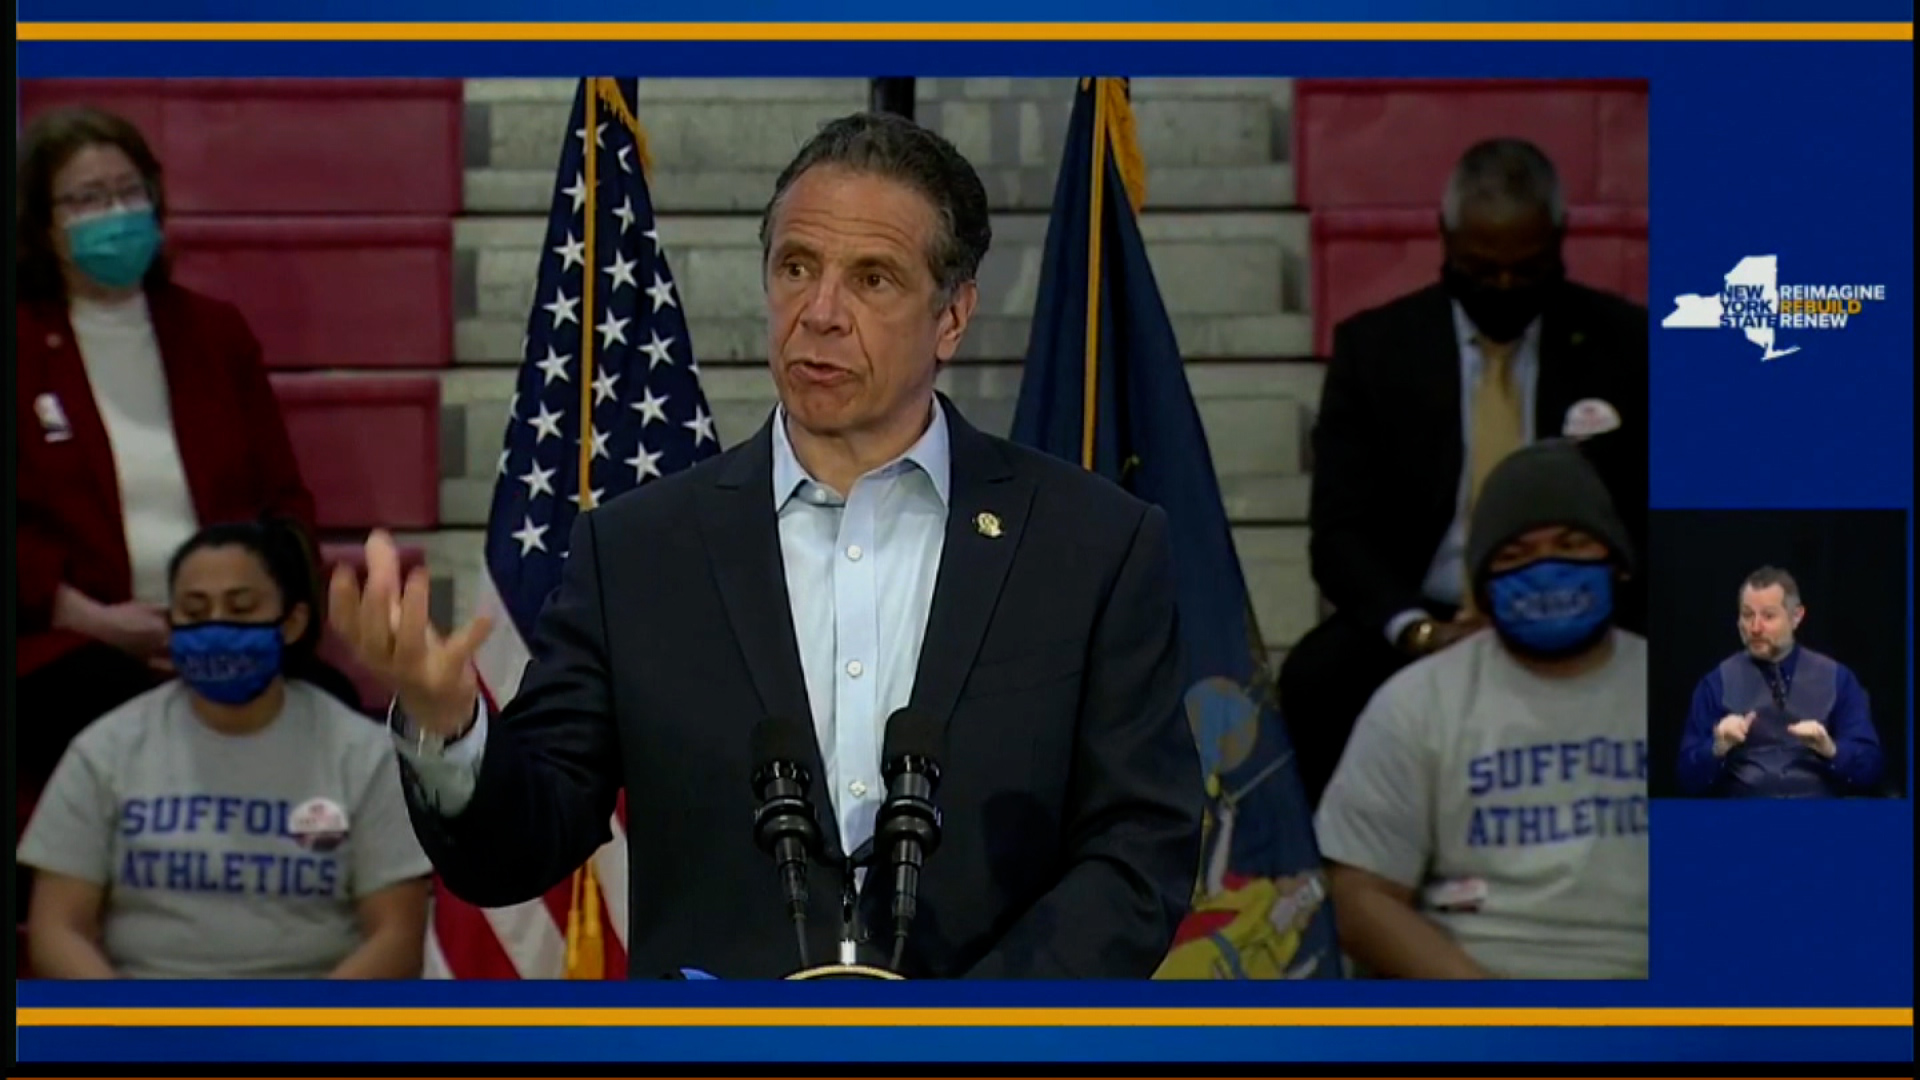 New York Gov. Andrew Cuomo speaks during an event in Brentwood, New York, on April 12.